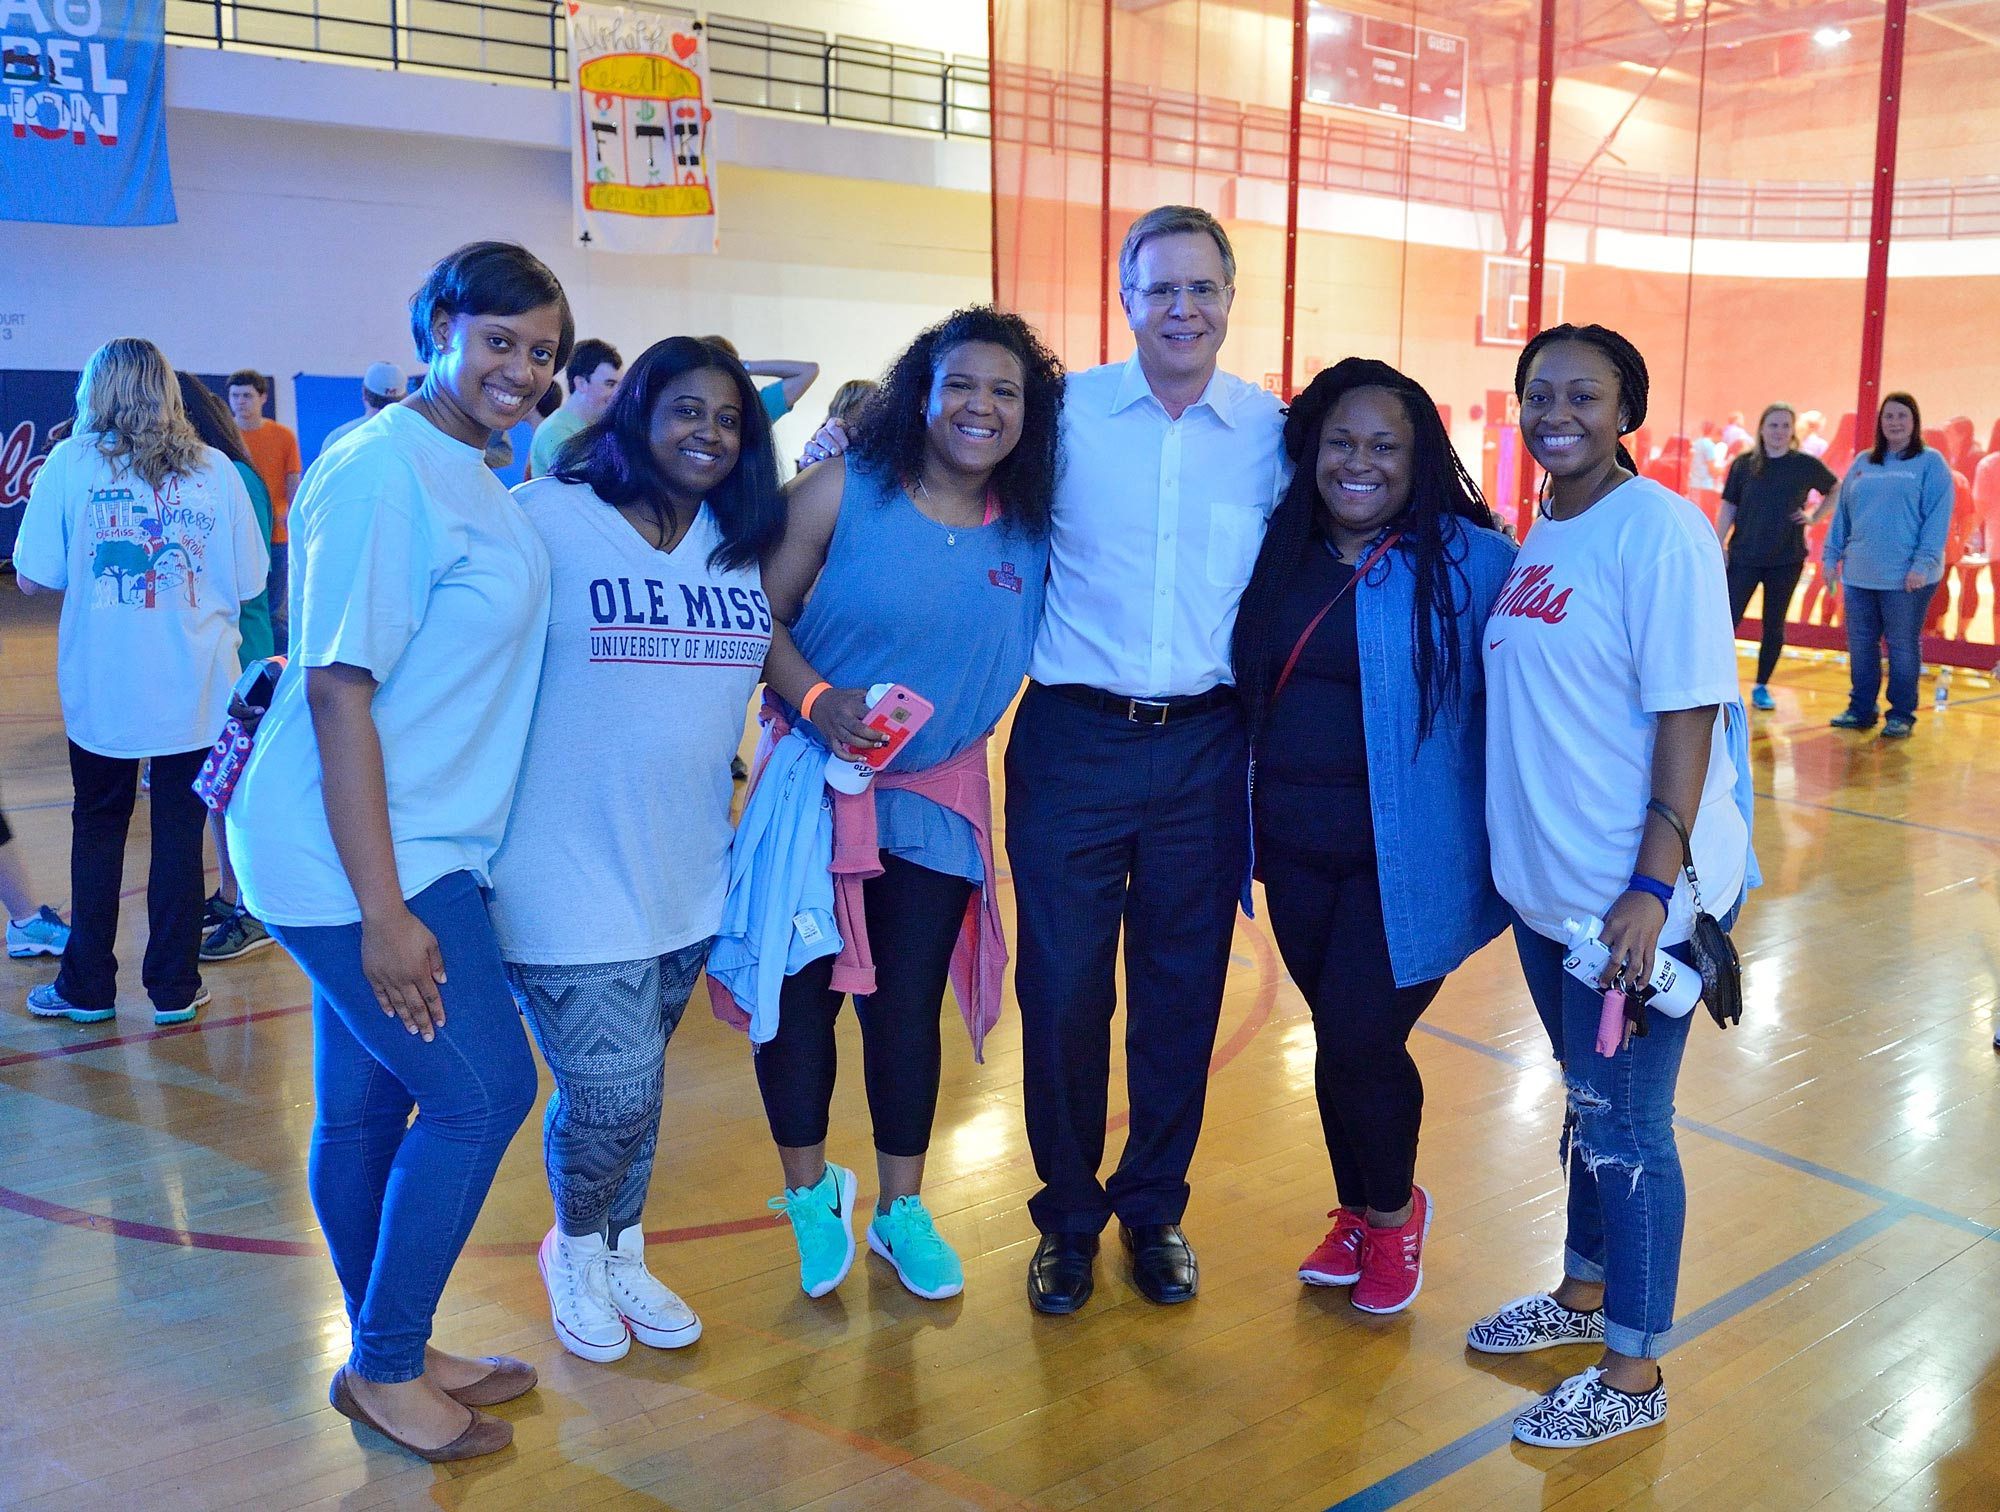 Chancellor Jeff Vitter smiles with students